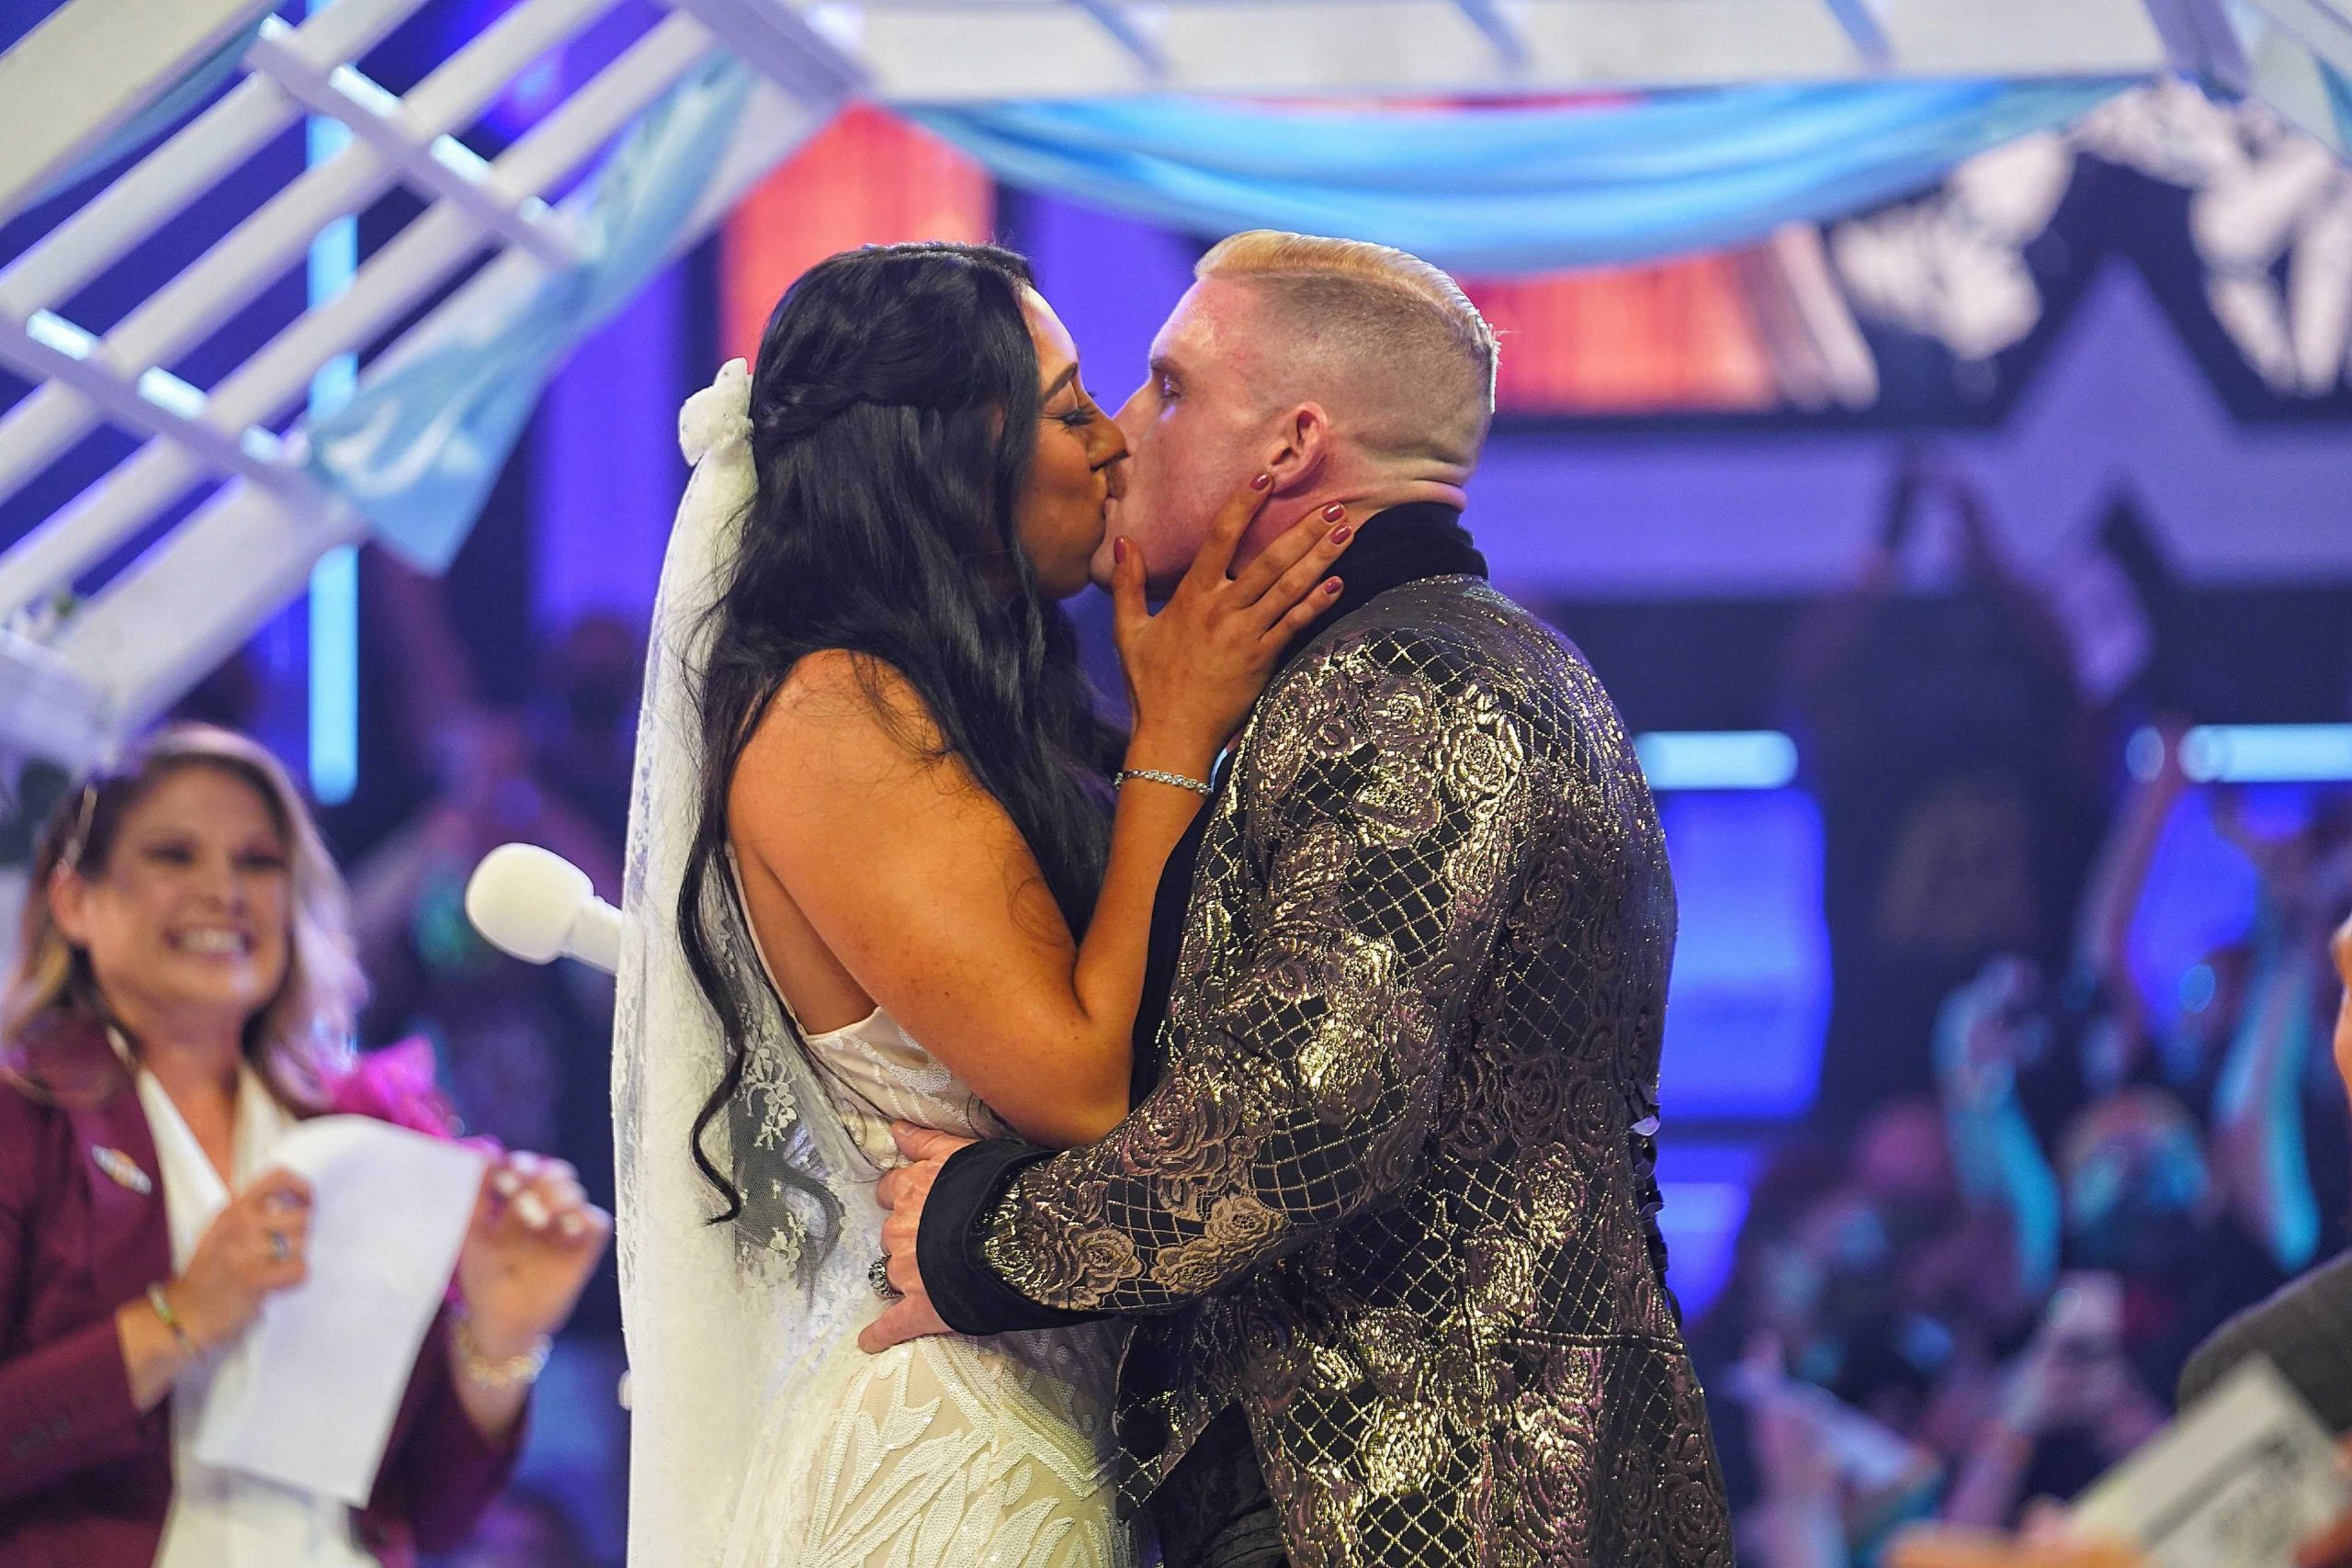 The InDex Wedding was a success; Mandy Rose reveals new look and stable name